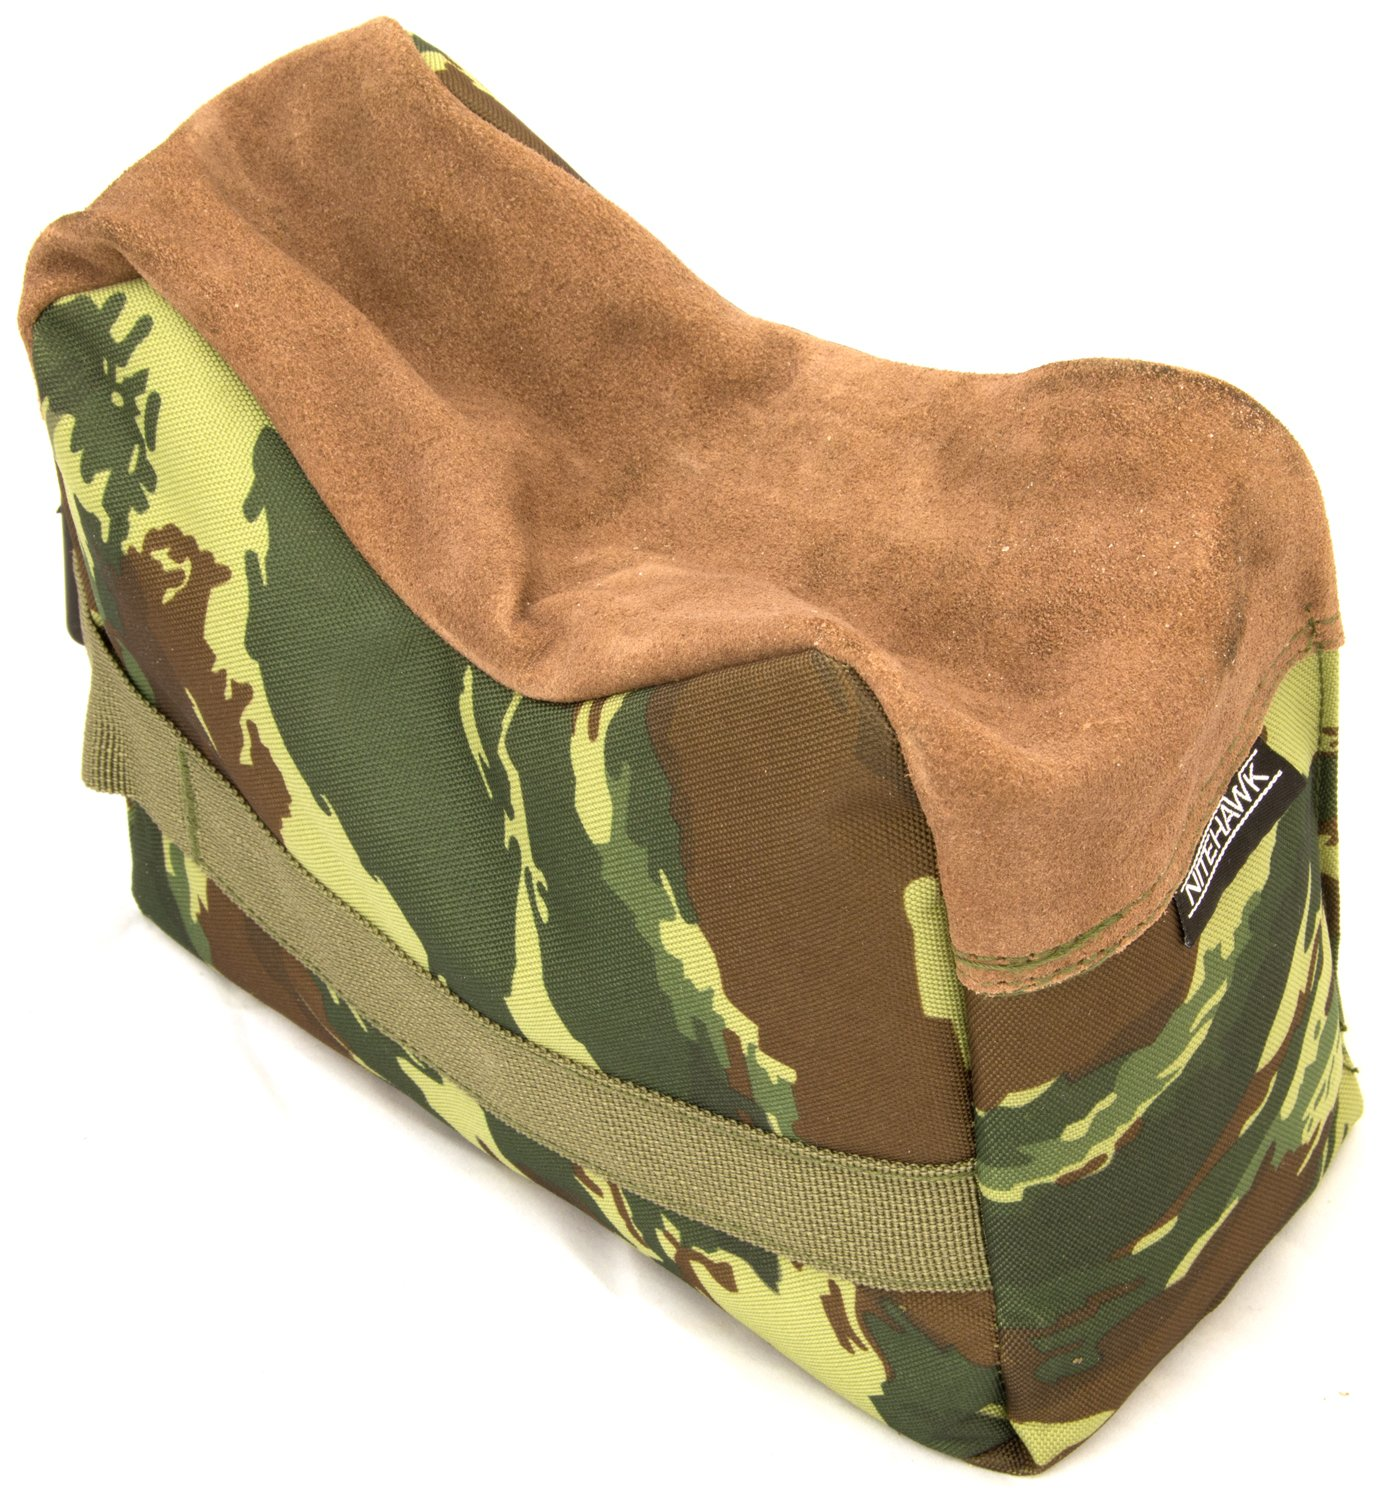 Wondrous Camouflage Shooting Sand Front Rear Rifle Target Rest Bag Creativecarmelina Interior Chair Design Creativecarmelinacom